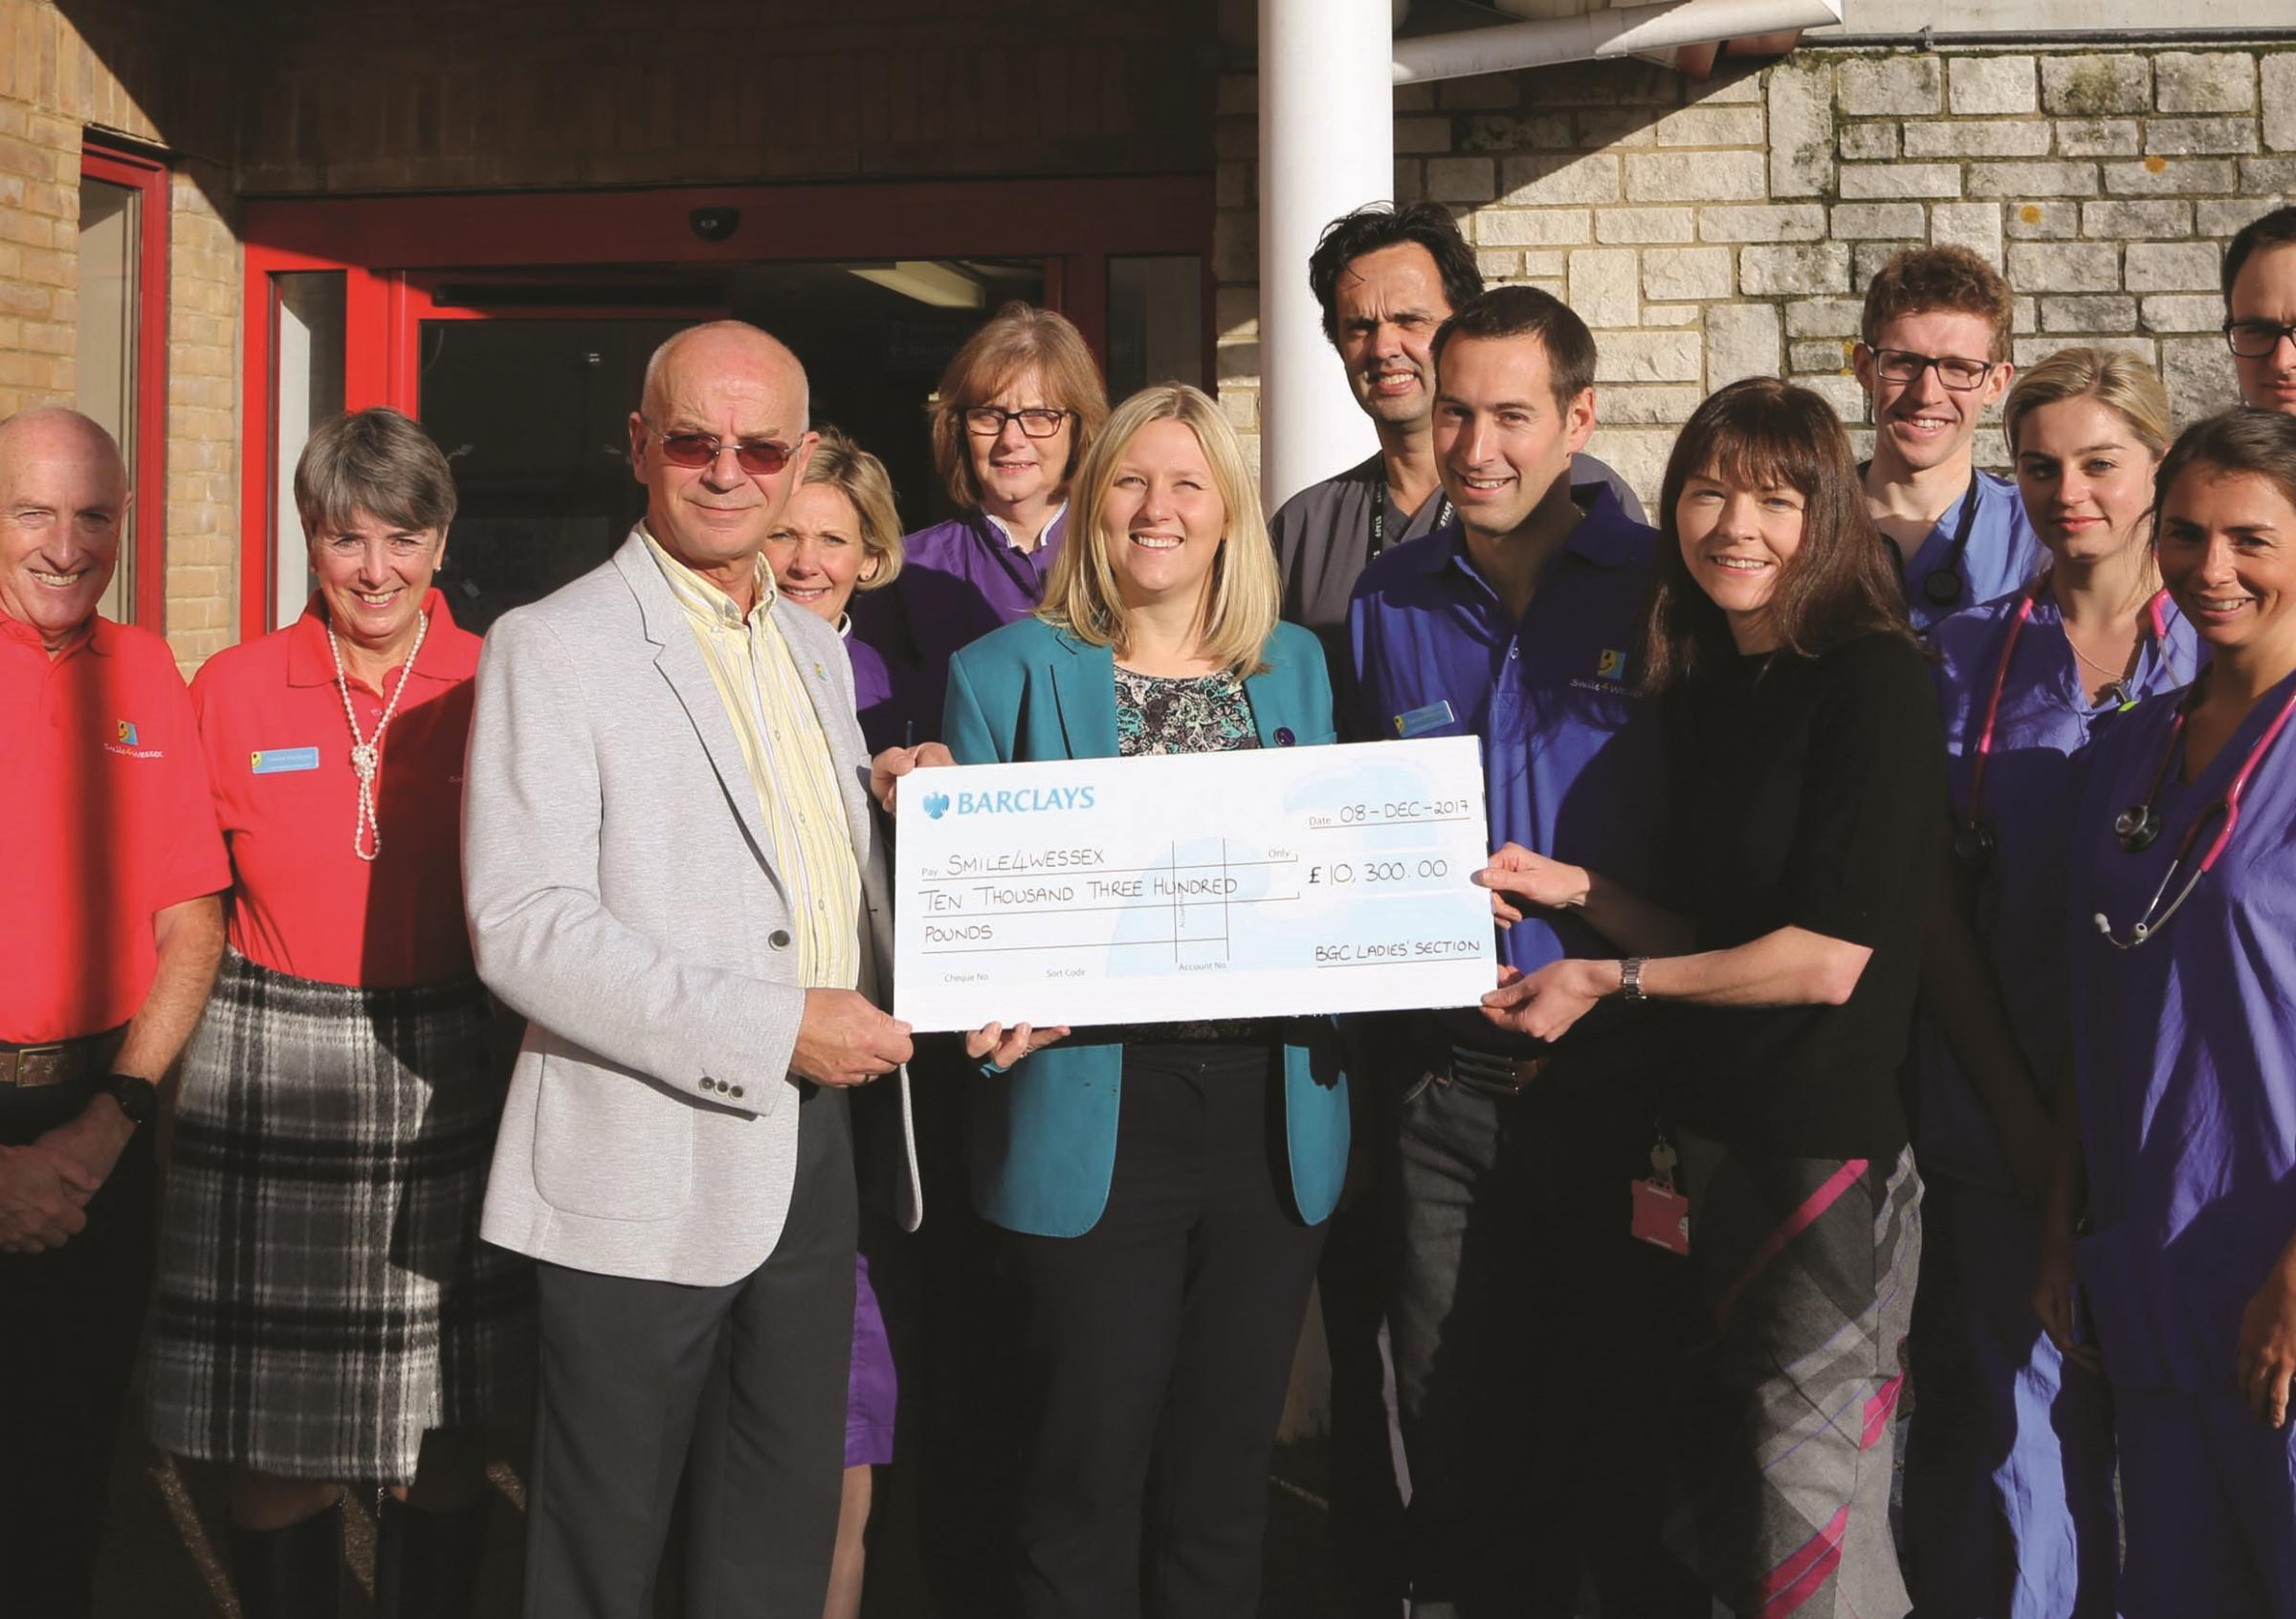 basingstoke golf club ladies spreading smiles with fundraising for